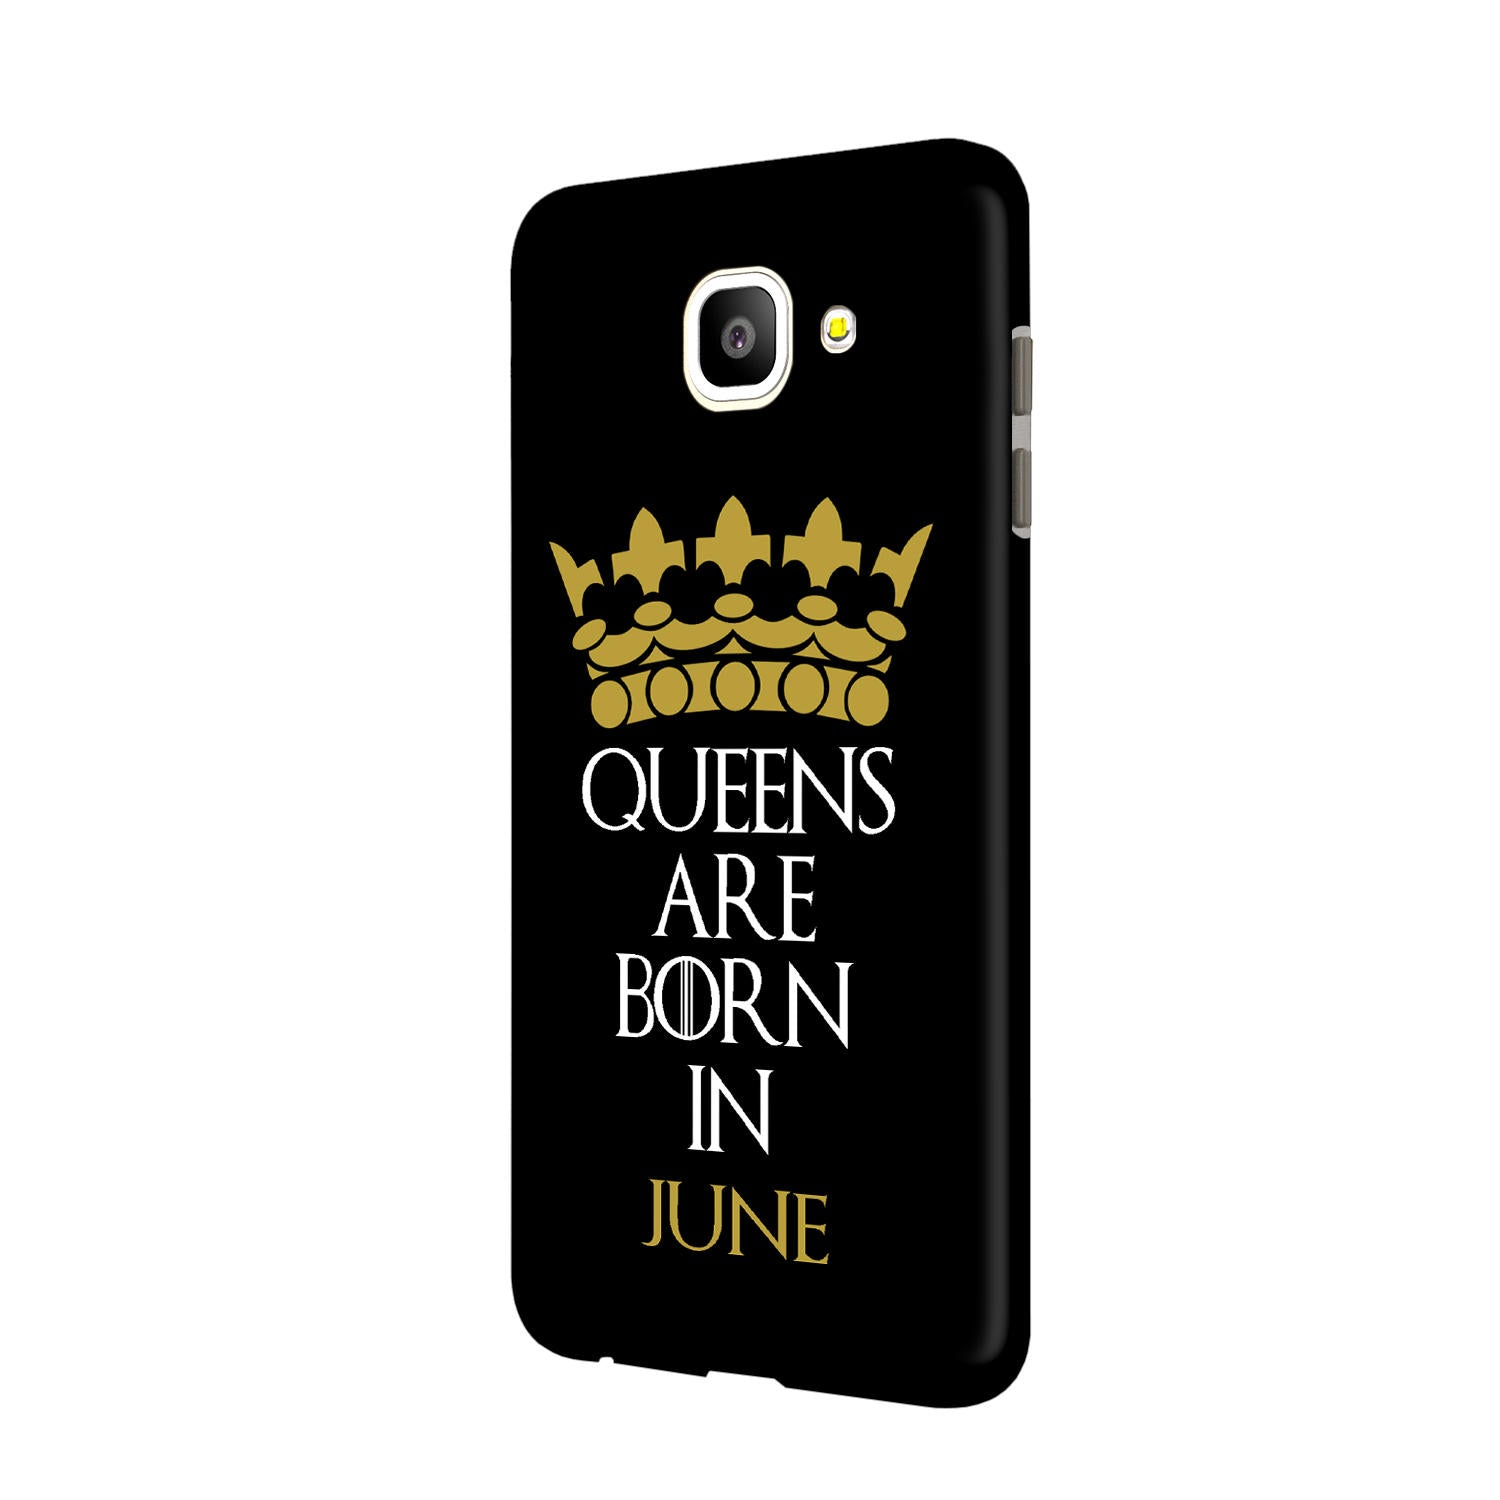 Queens June Samsung Galaxy J7 Max Mobile Cover Case - MADANYU